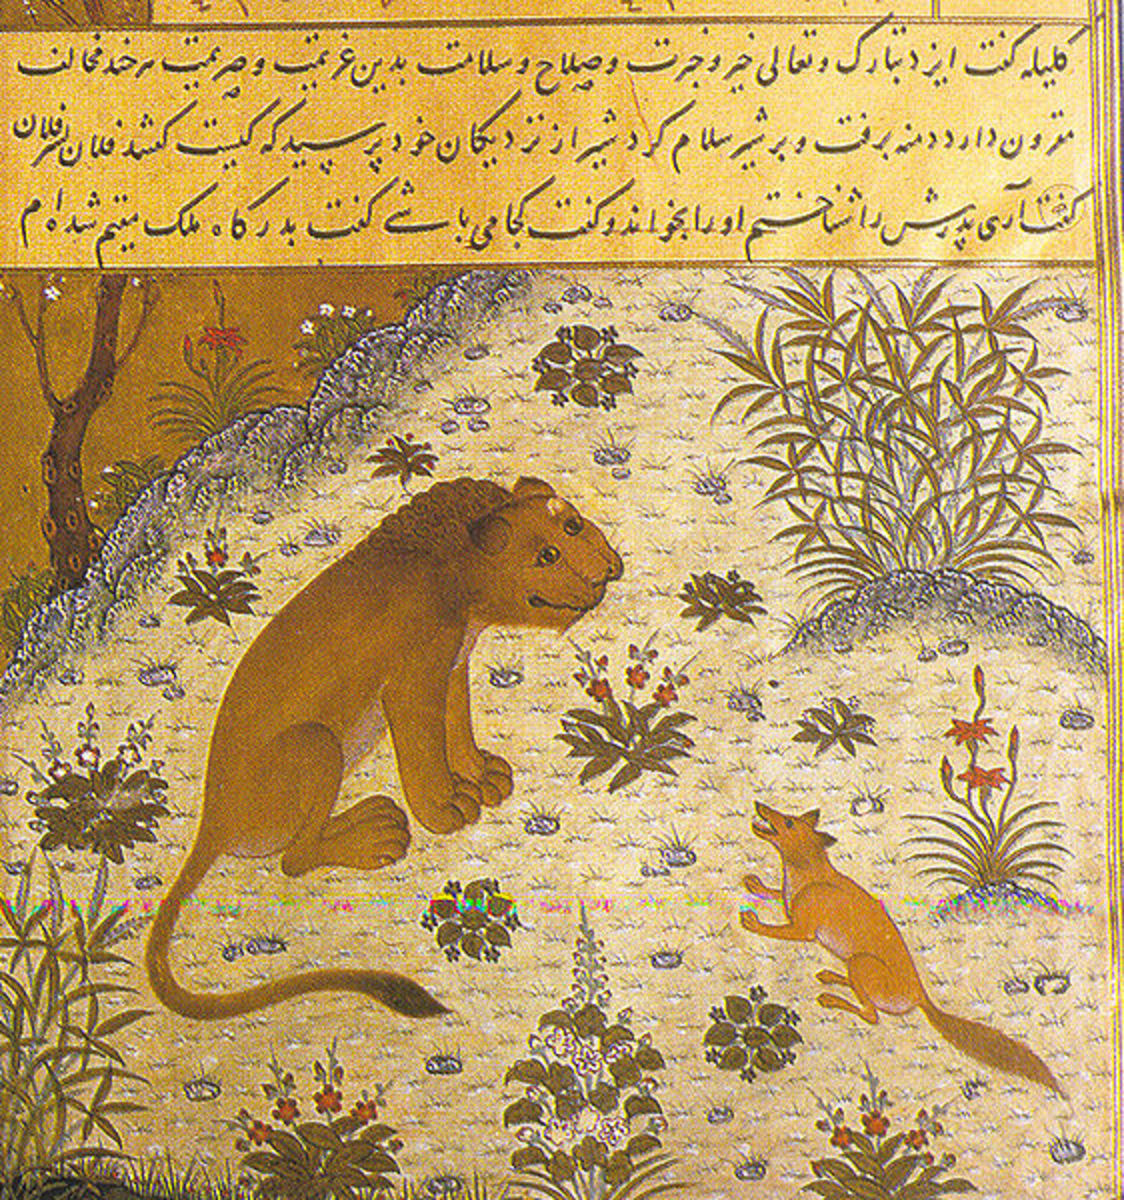 India 's ancient fables - Panchatantra Five Principles